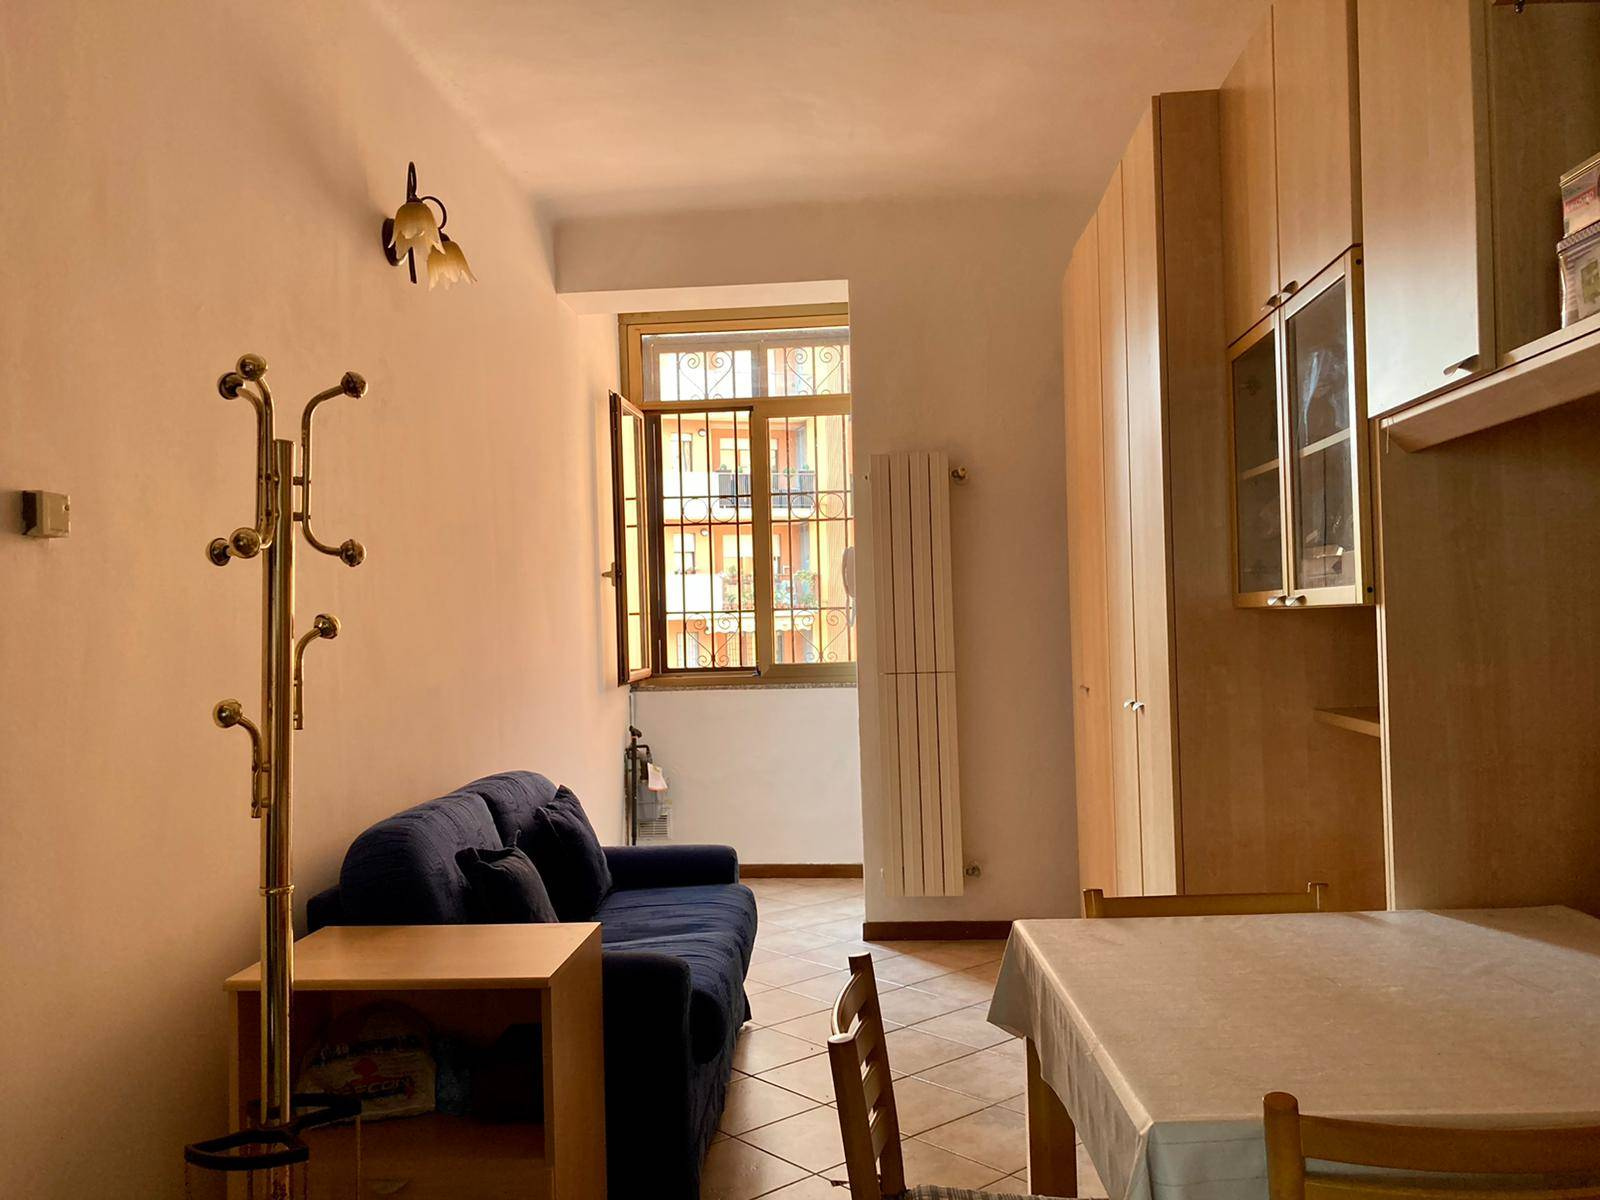 SESTO SAN GIOVANNI, Apartment for sale, Restored, Heating Individual heating system, Energetic class: G, Epi: 175 kwh/m2 year, placed at 1° on 3,